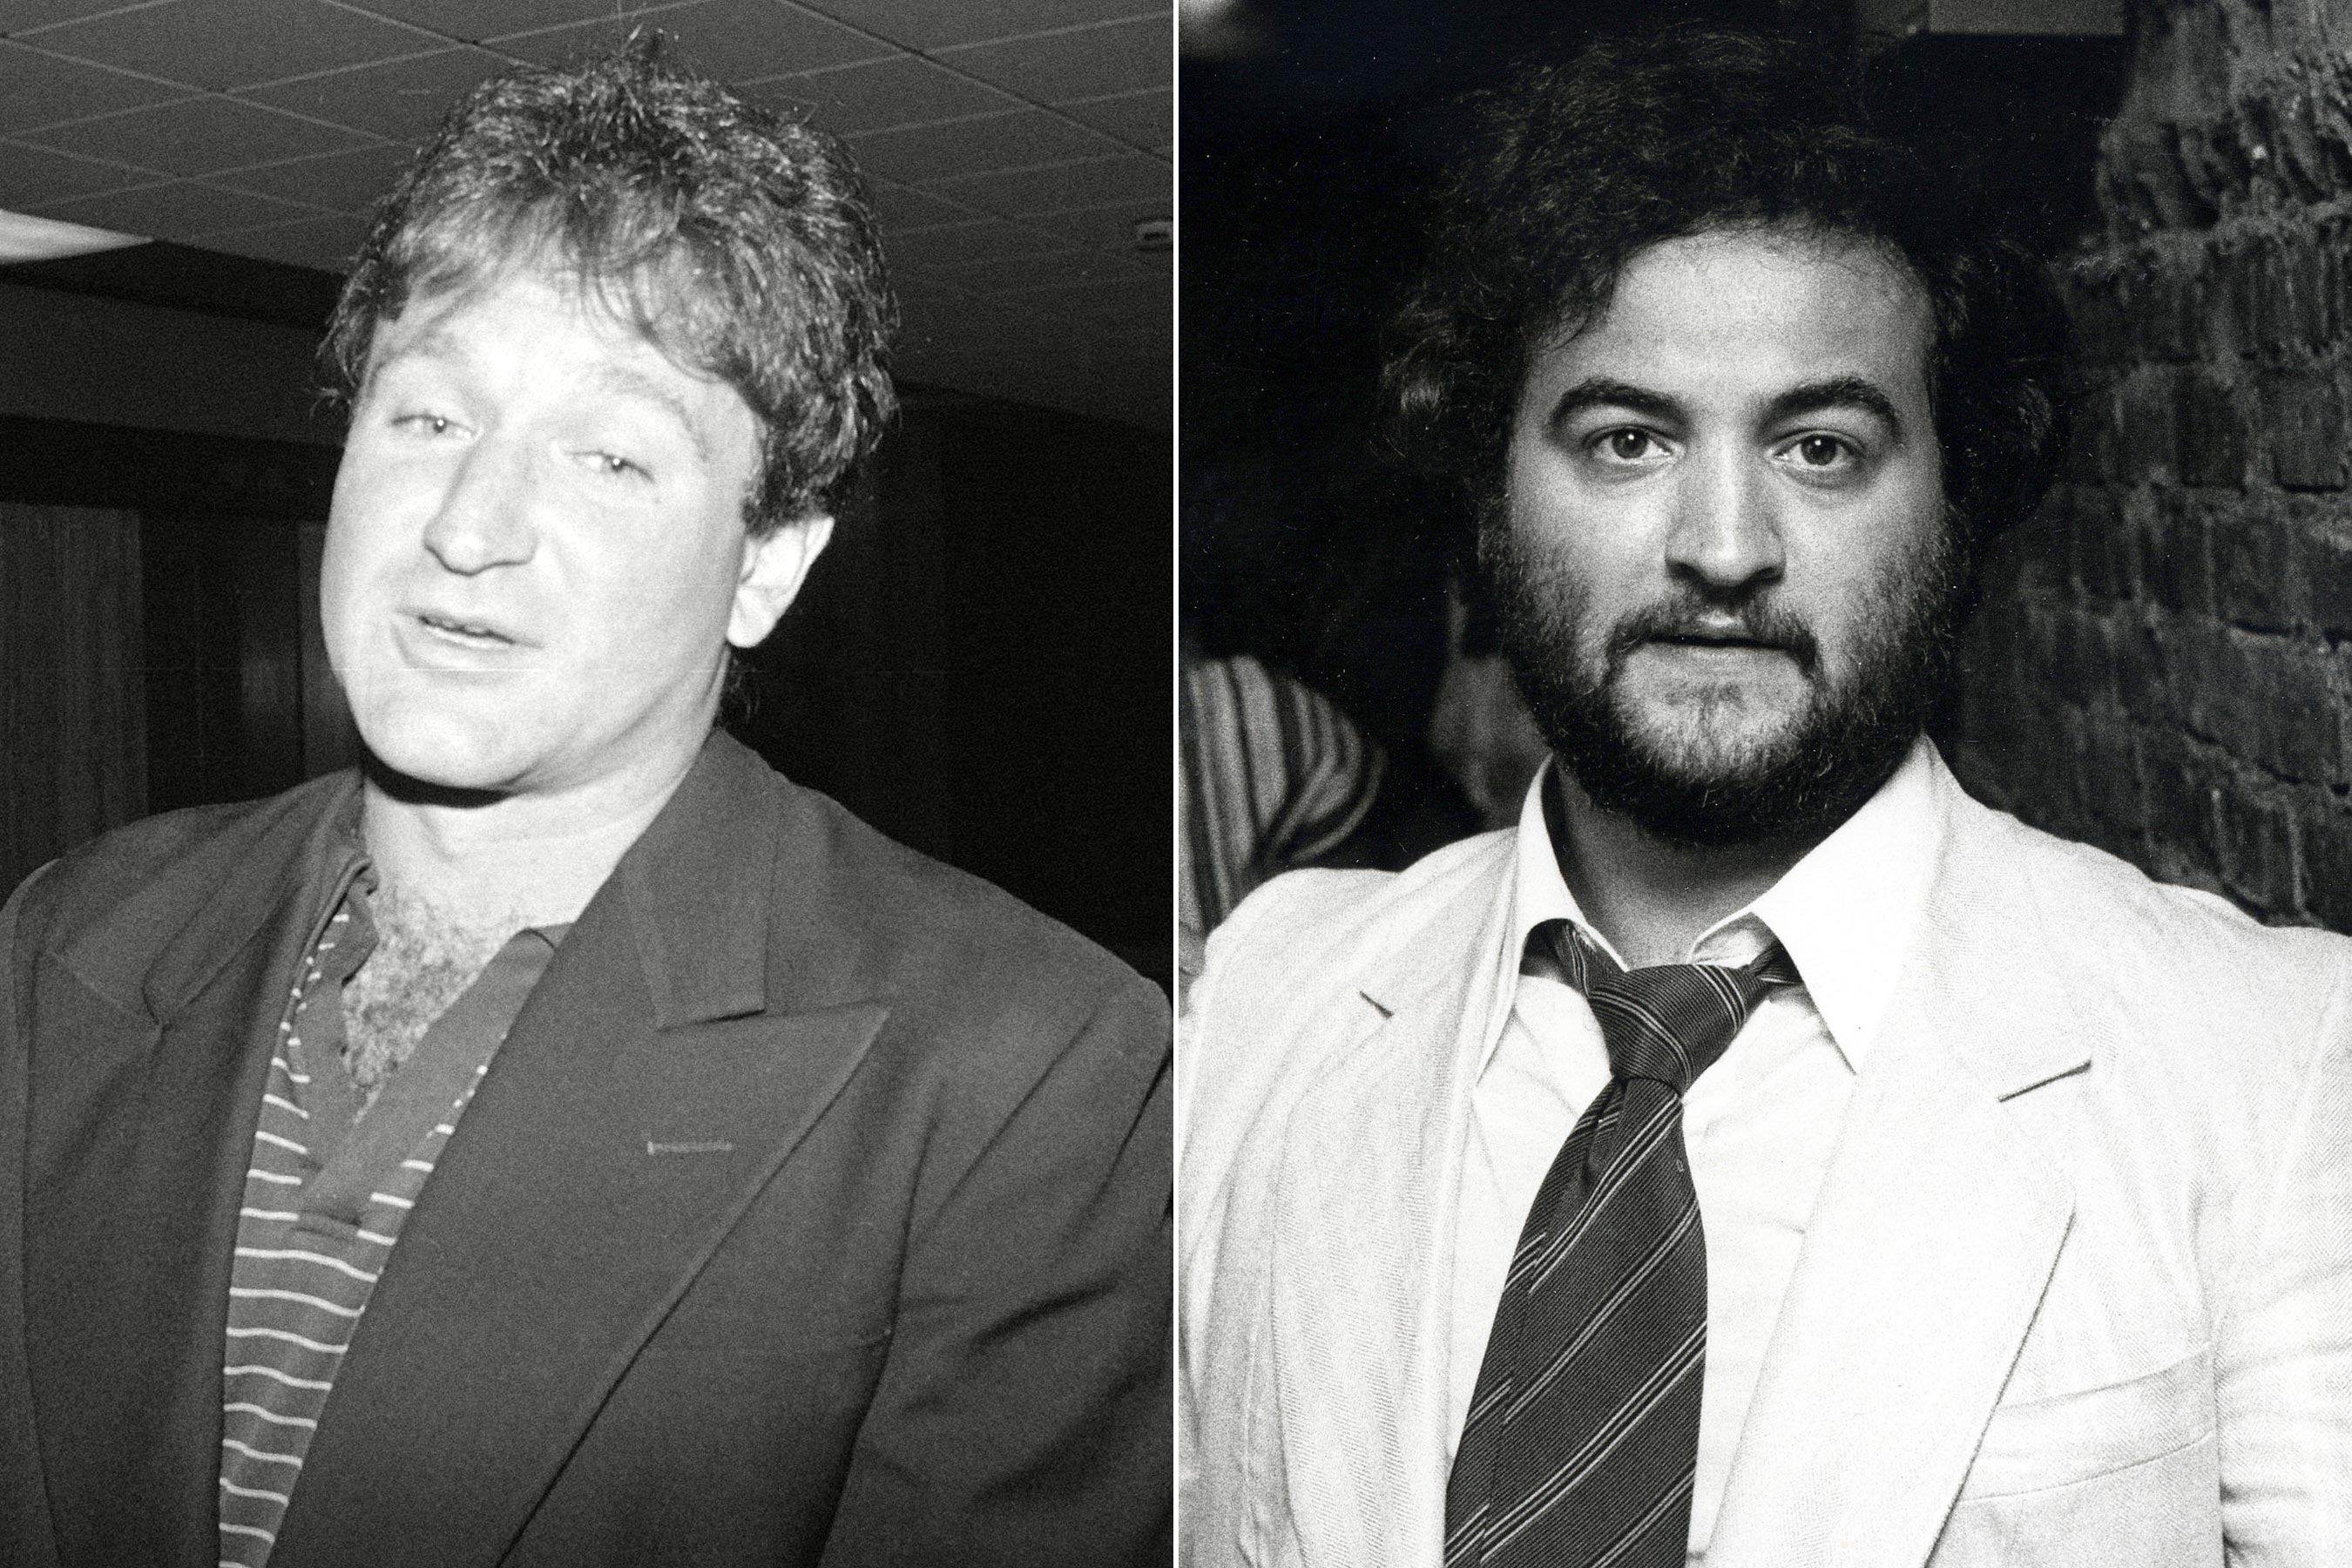 Robin Williams Quit Drugs After John Belushi's Death: 'Cocaine for Me Was a Place to Hide'